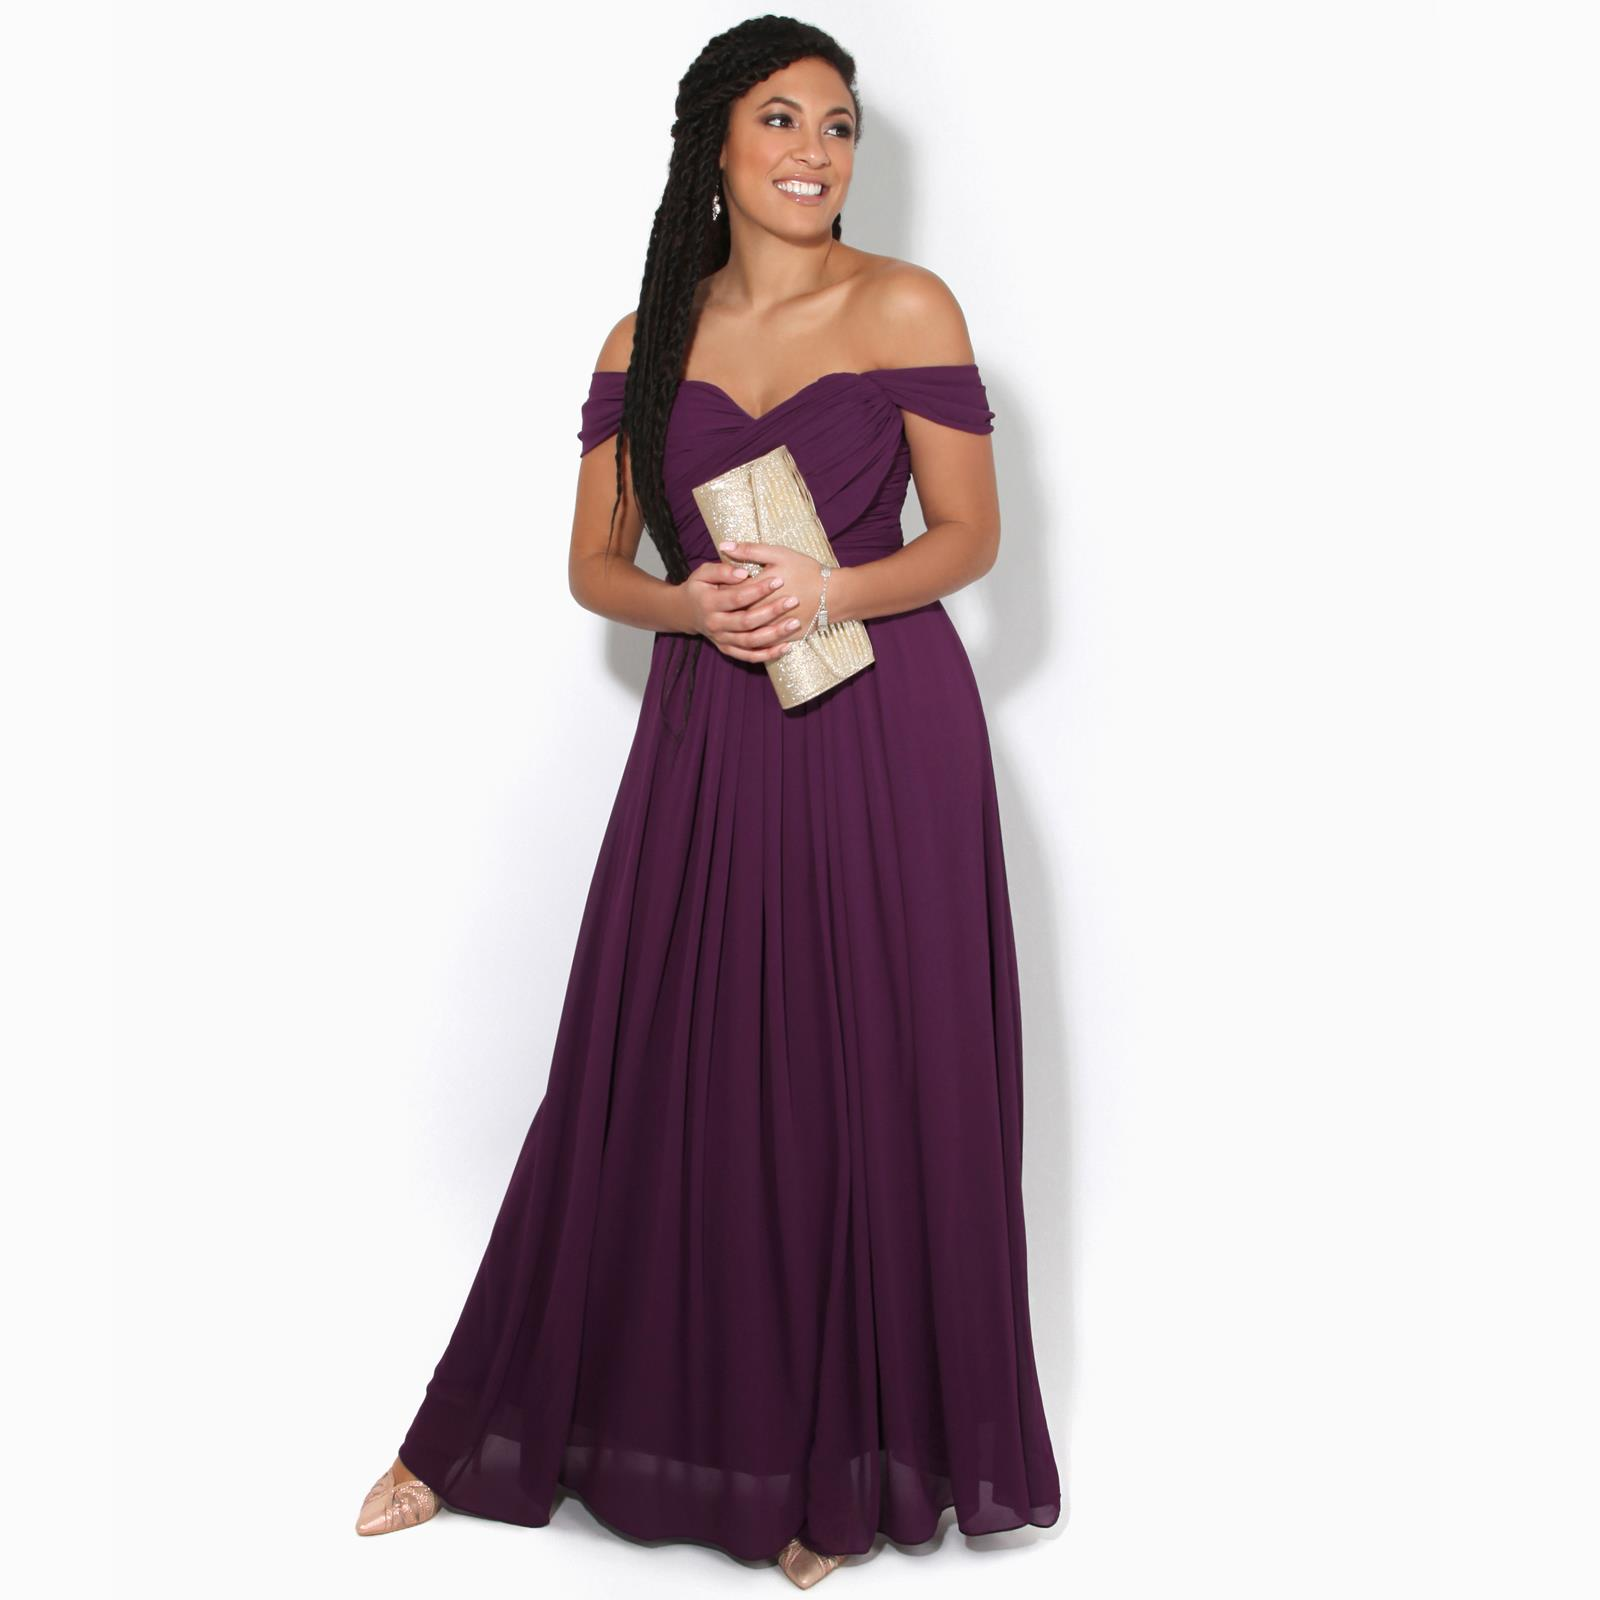 Womens-Formal-Evening-Wedding-Maxi-Prom-Dress-Long-On-Off-Shoulder-Ball-Gown thumbnail 10